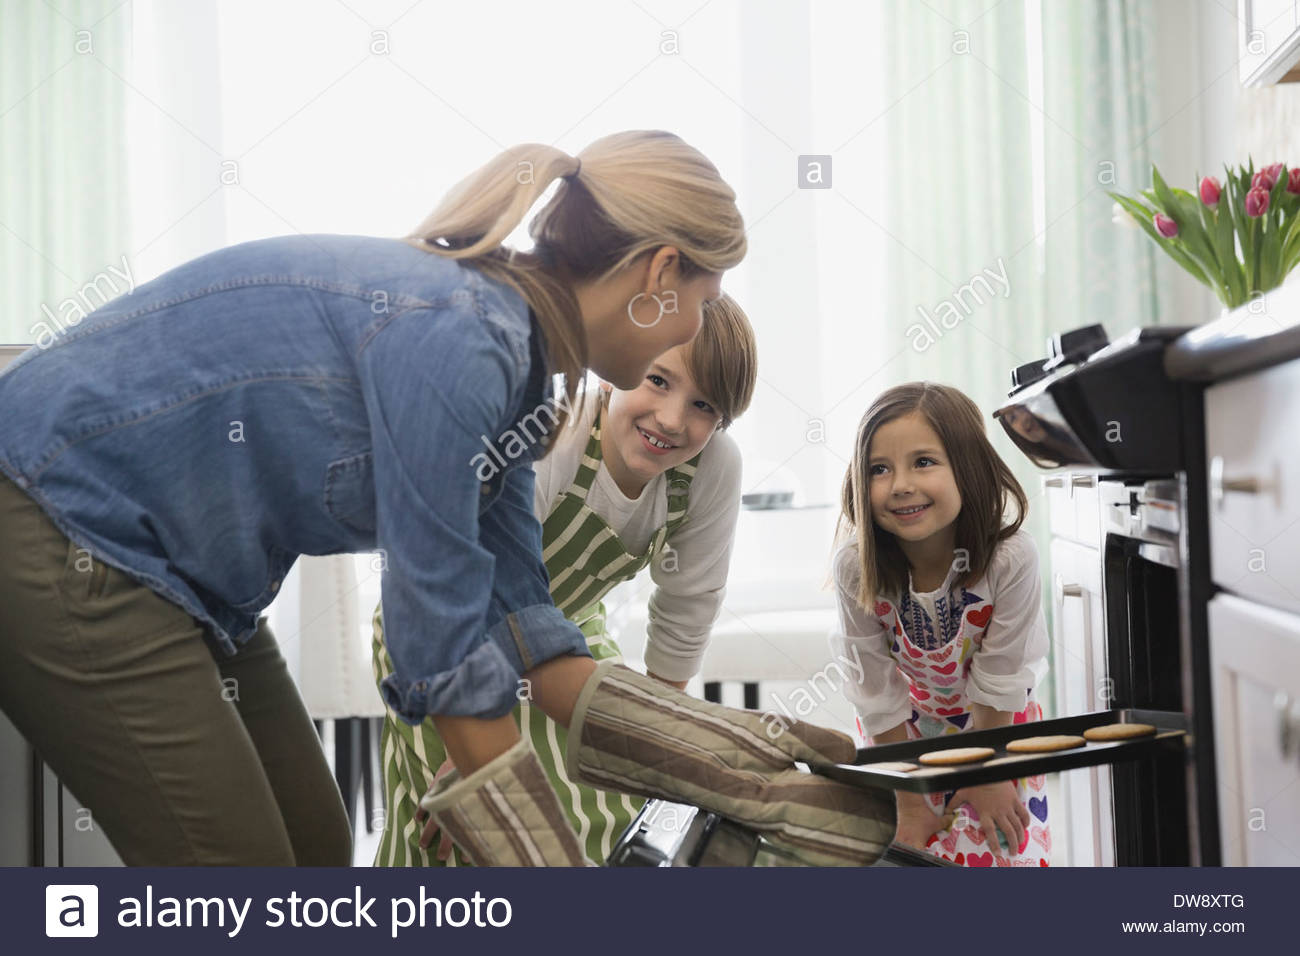 Mother and children baking cookies in kitchen - Stock Image